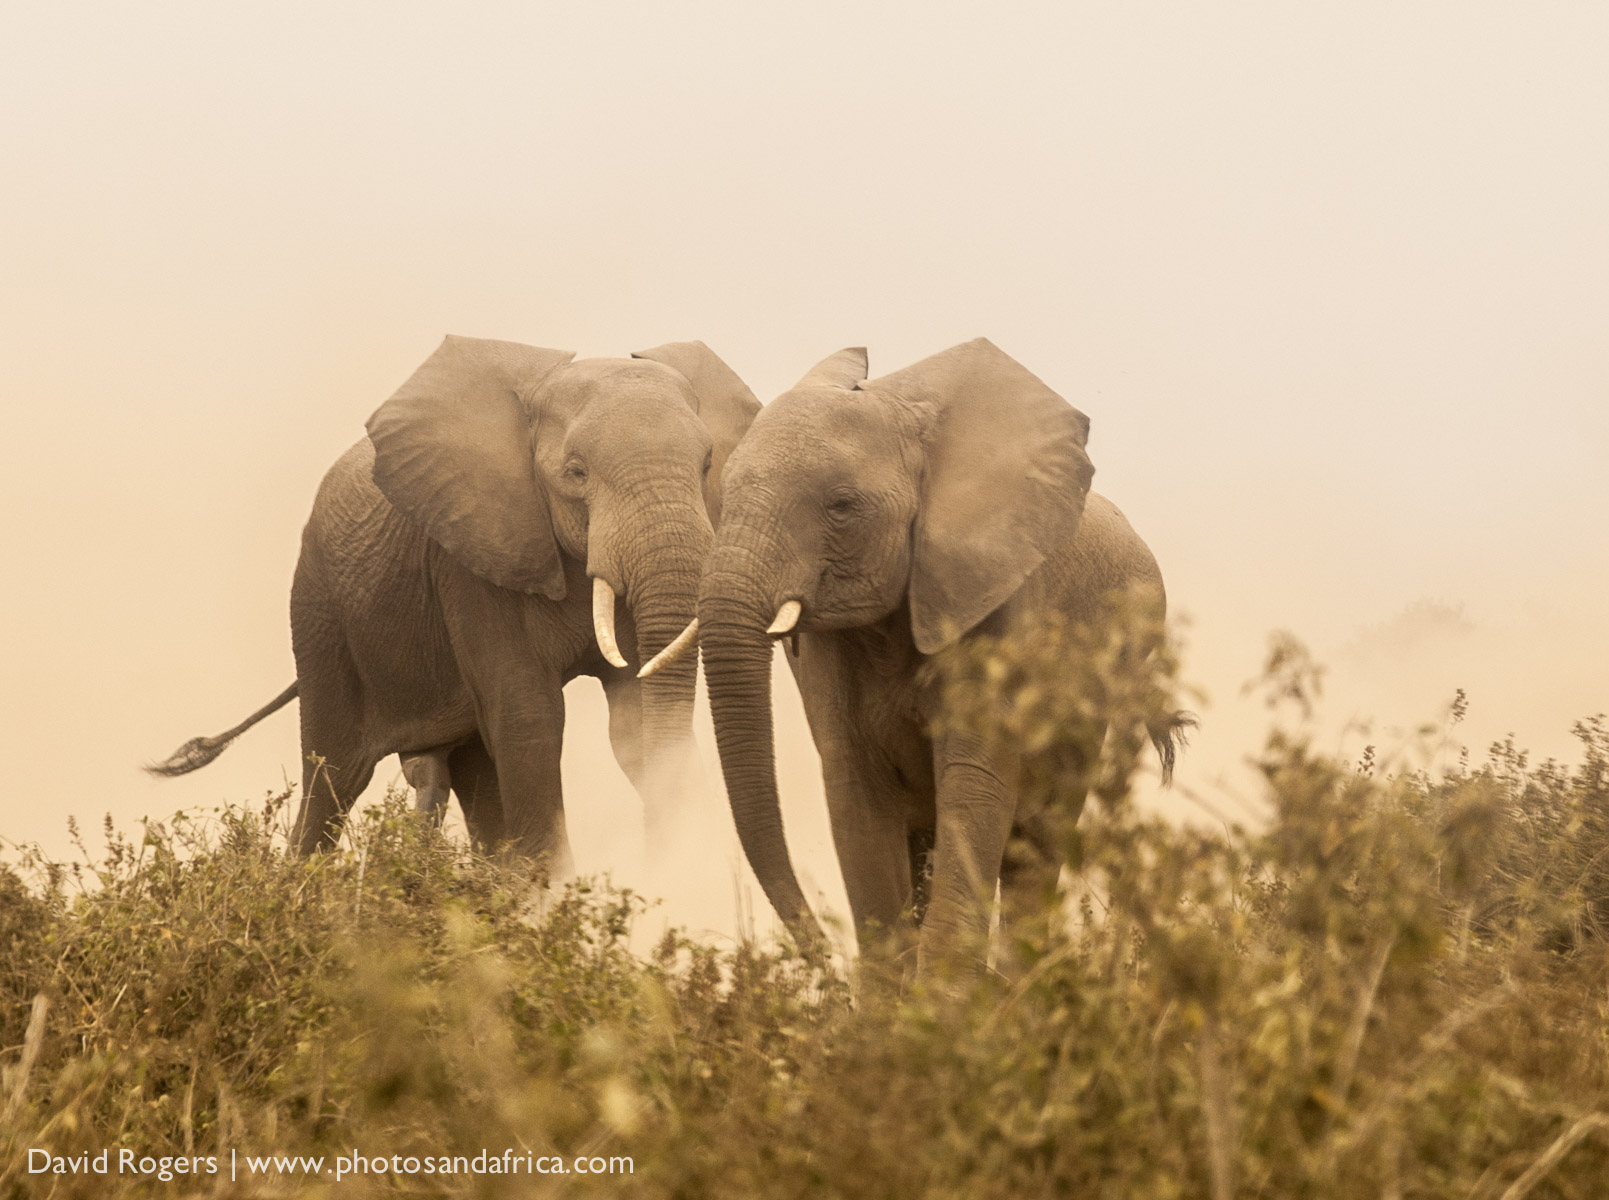 Kenya, Amboseli National Park, a group of two elephants in the dust. ©David Rogers